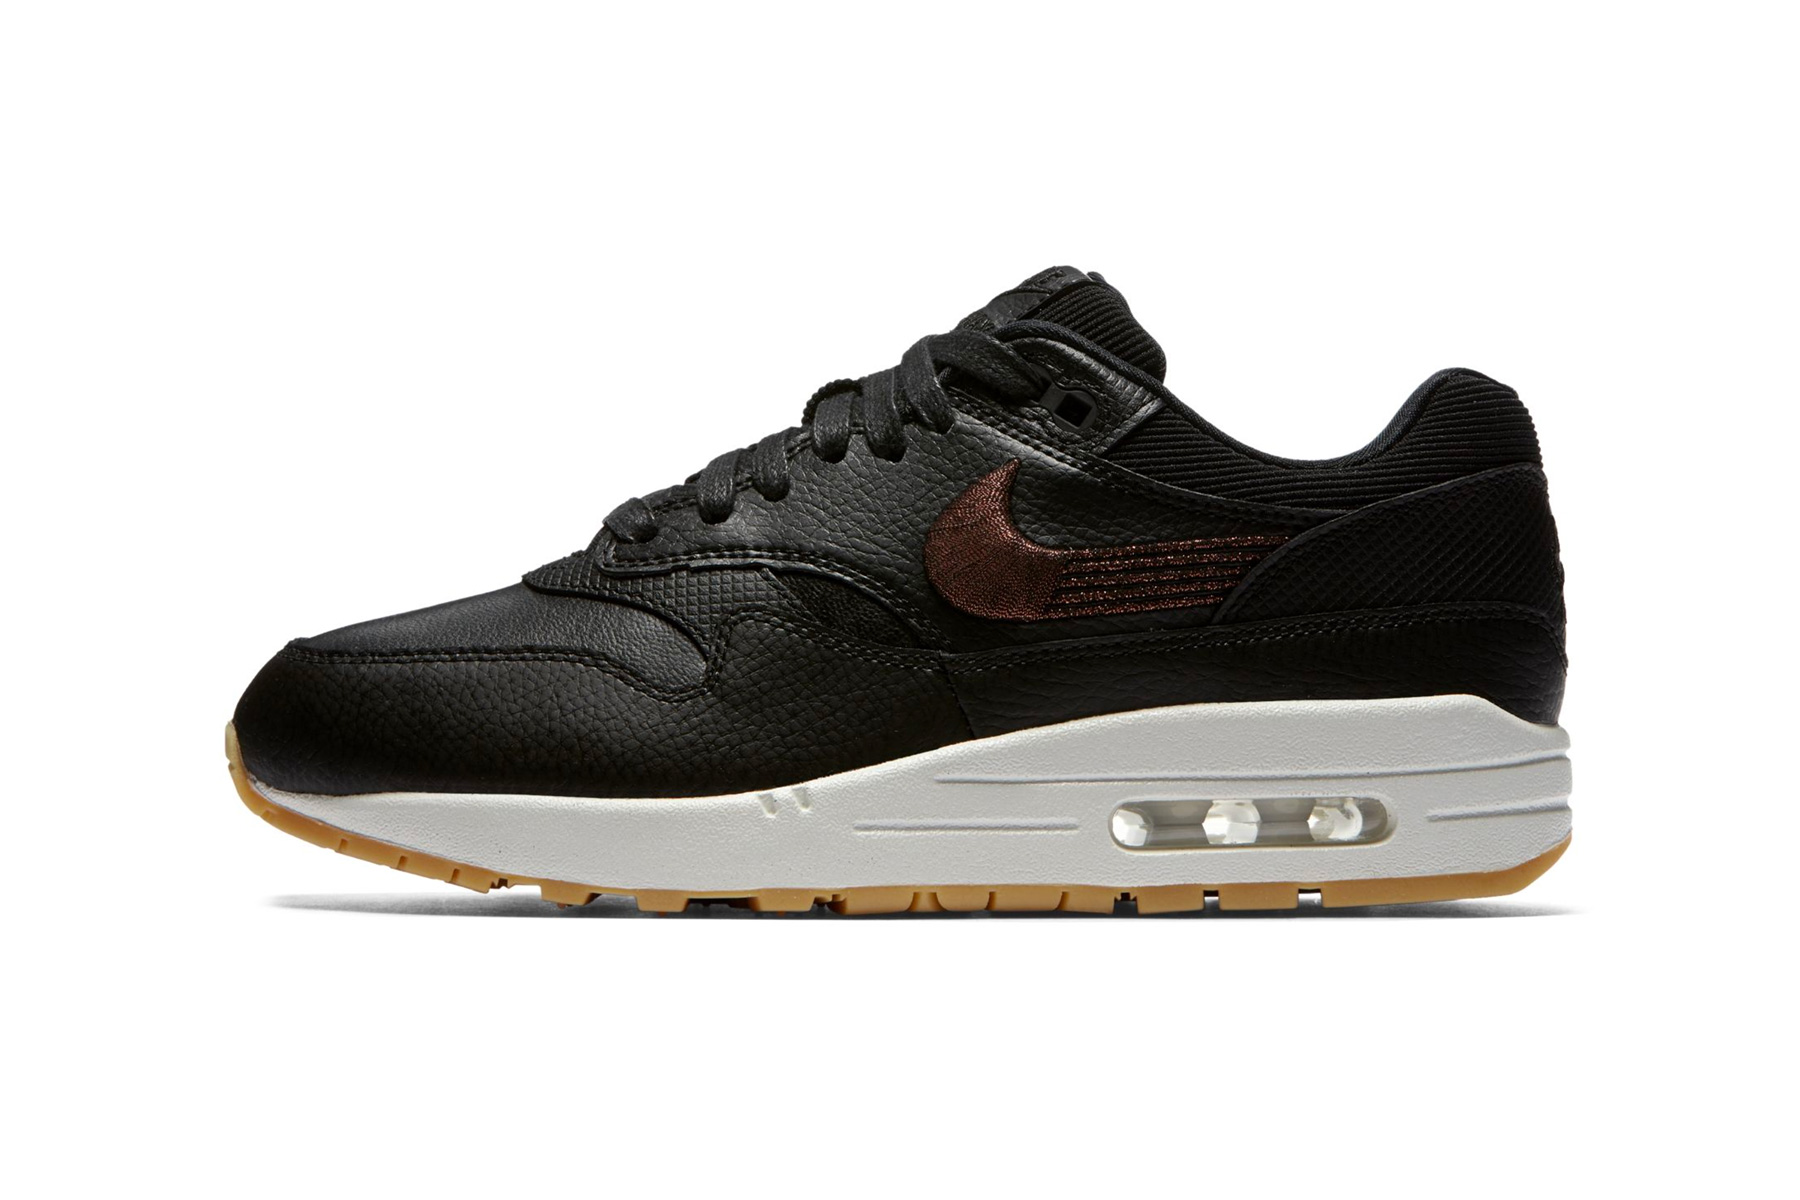 Nike Air Max 1 Premium Black Leather Bronze embroidery release date price sneaker